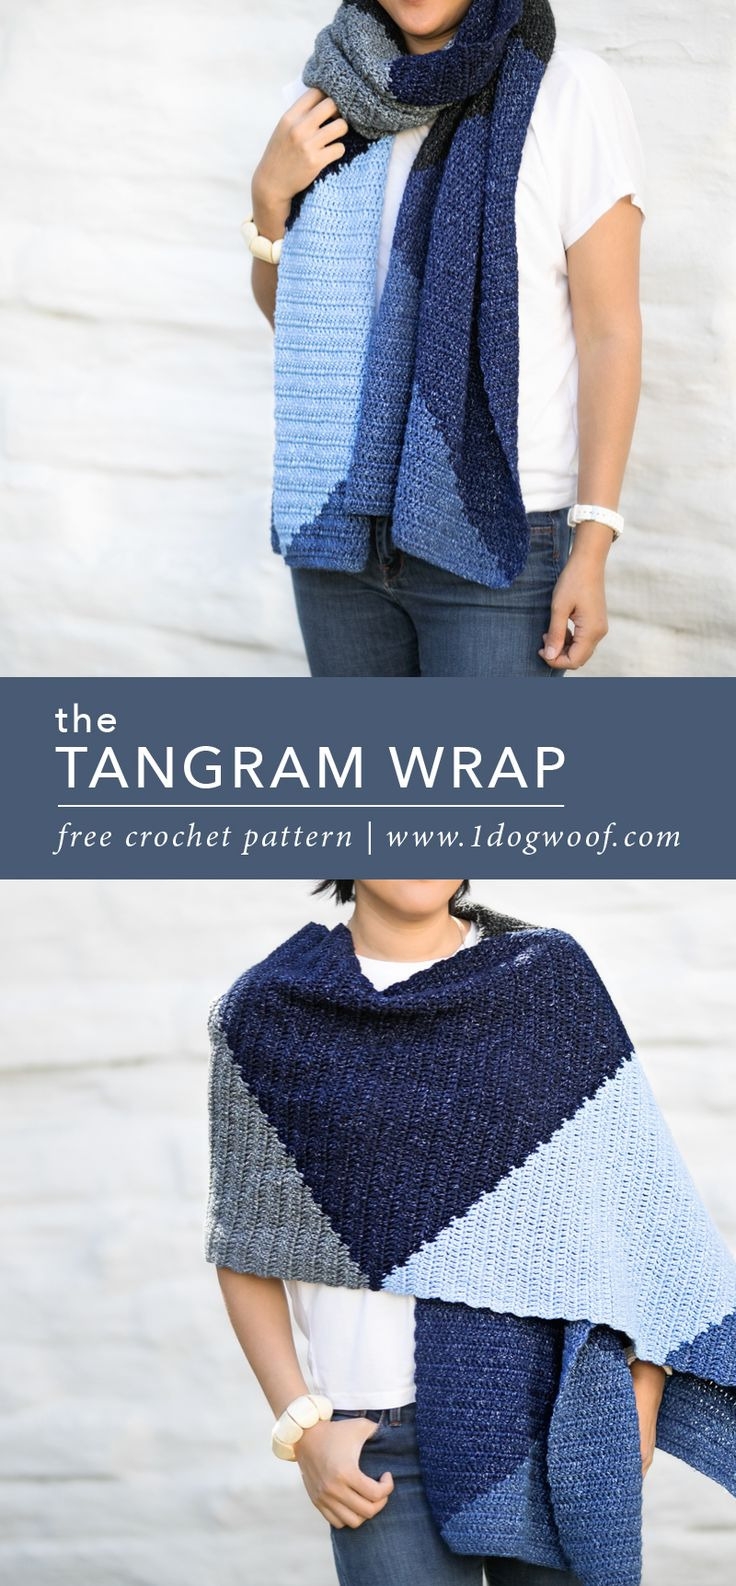 A simple and modern crochet scarf wrap inspired by the fun, geometric tangrams. This free pattern is a great project for beginners or anyone who wants a soft, easy scarf. | www.1dogwoof.com